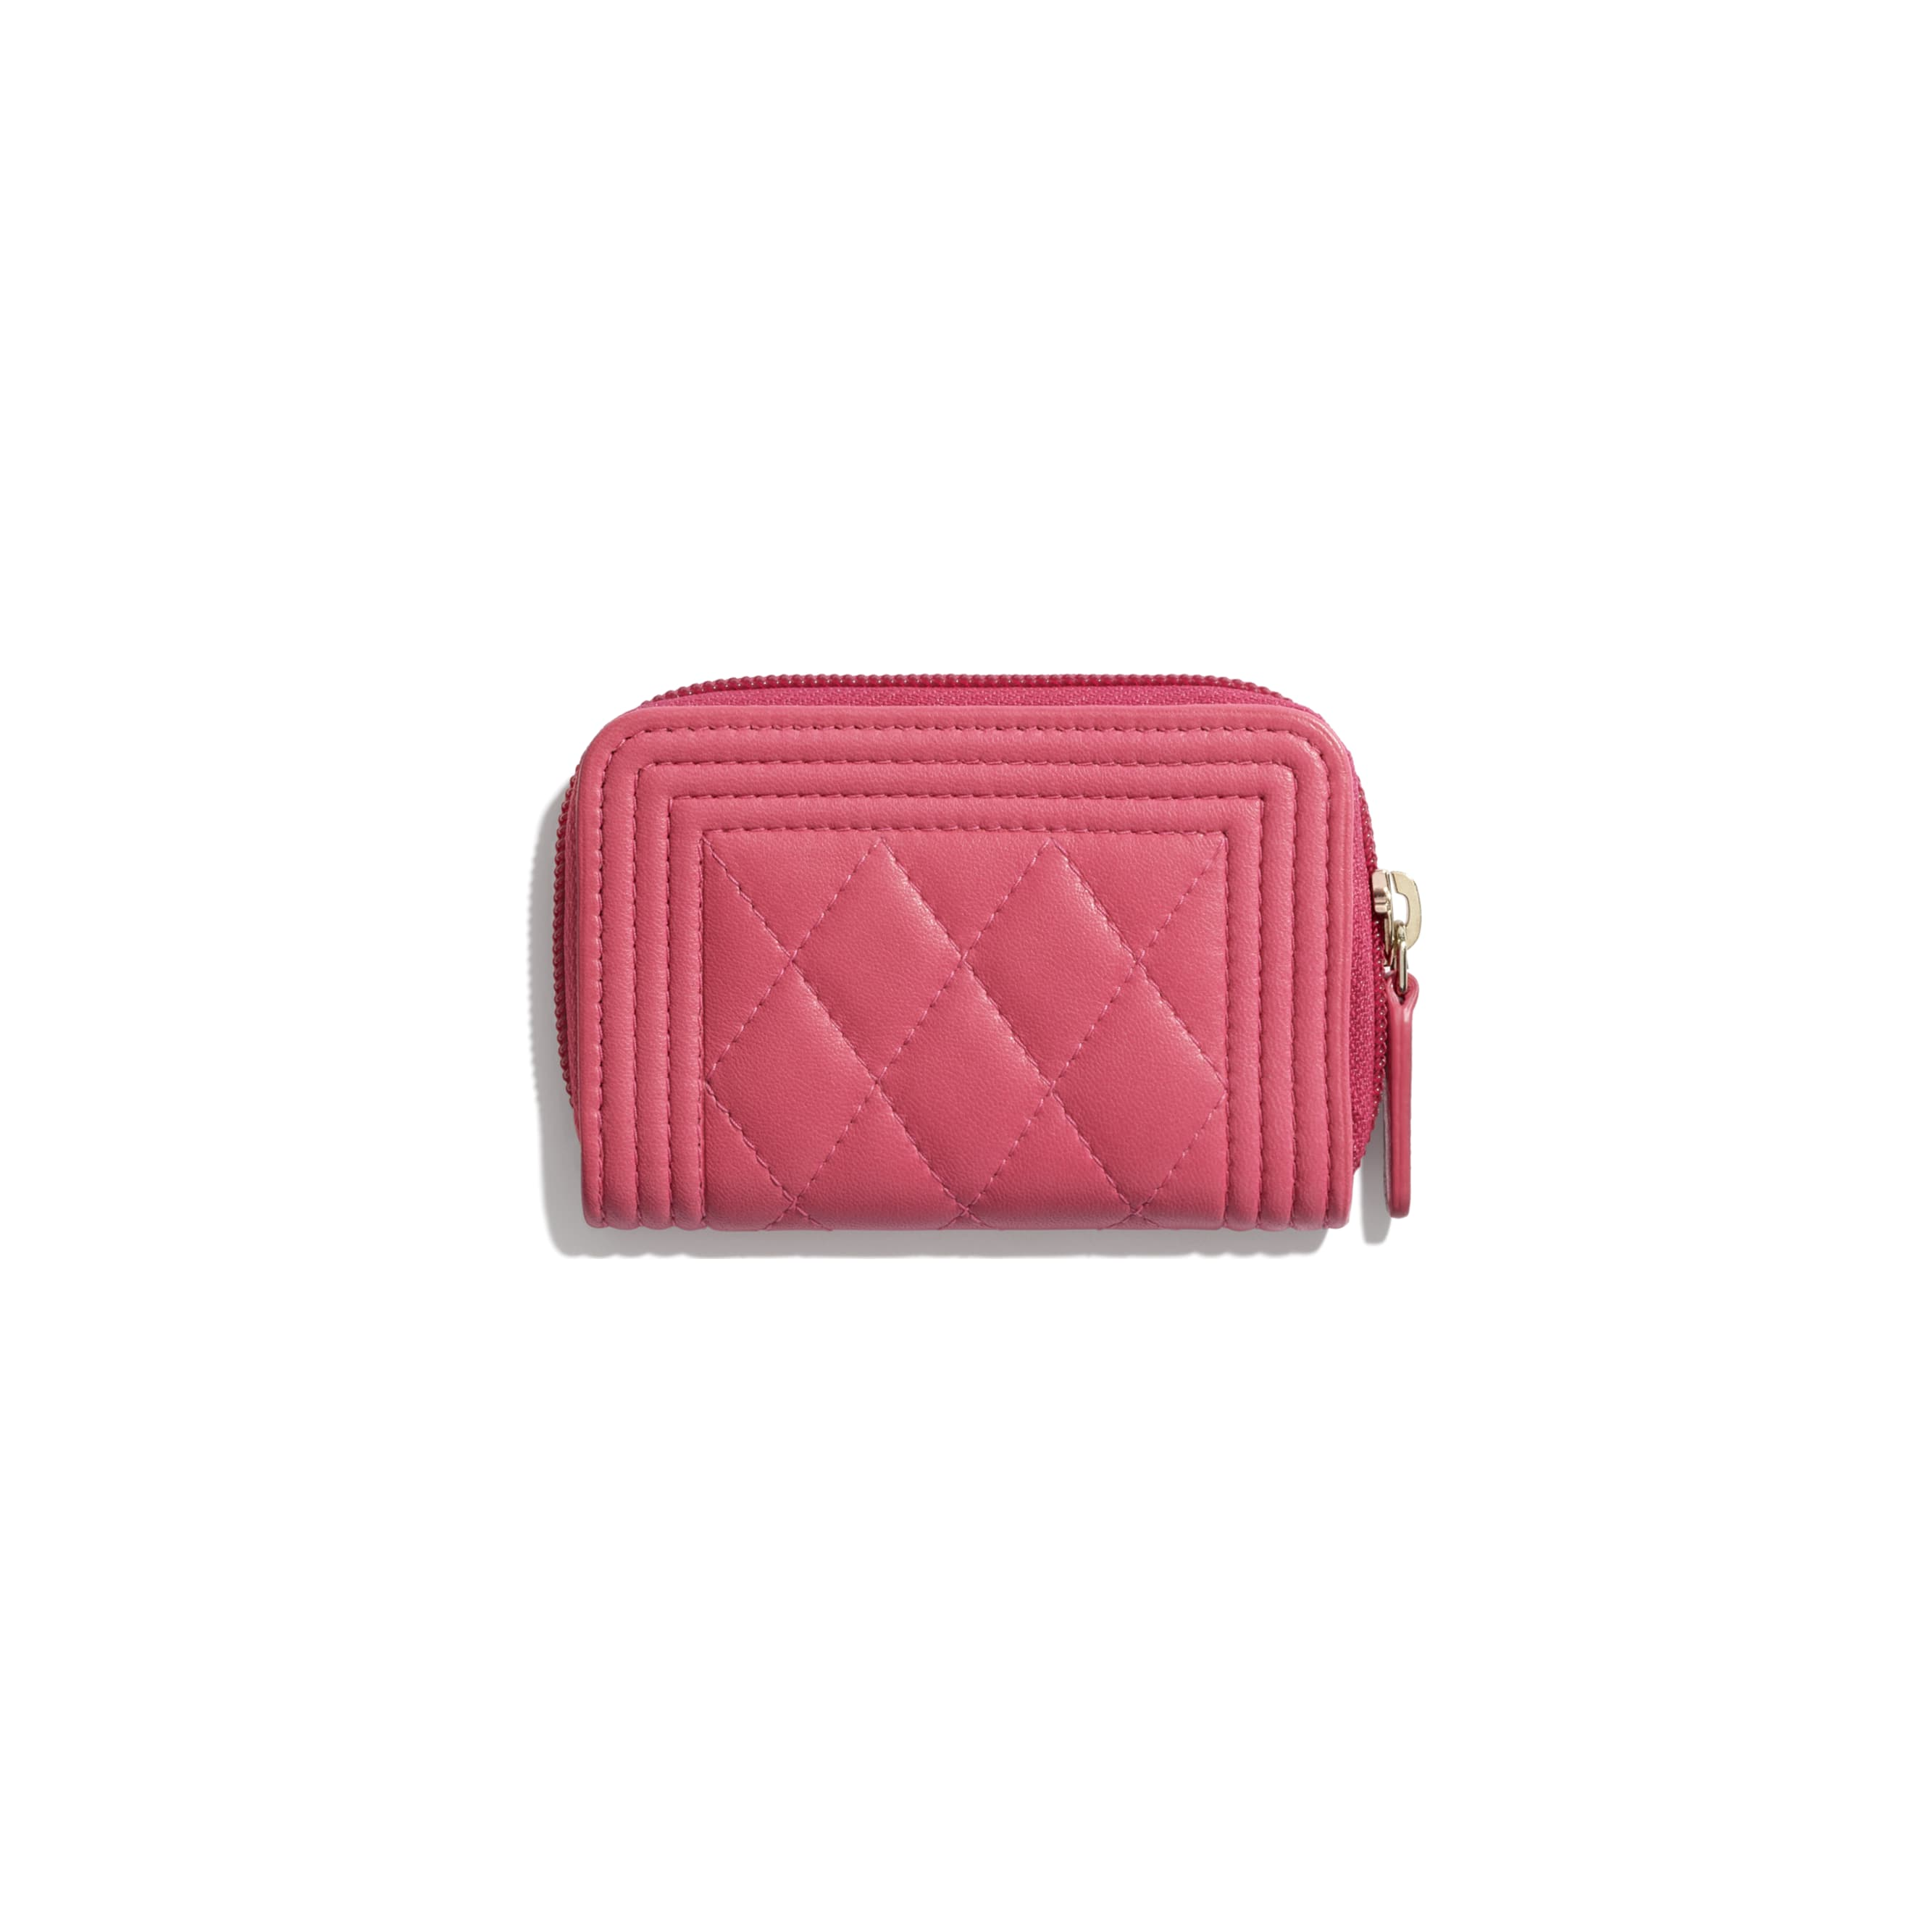 BOY CHANEL Zipped Coin Purse - Pink - Lambskin - CHANEL - Alternative view - see standard sized version